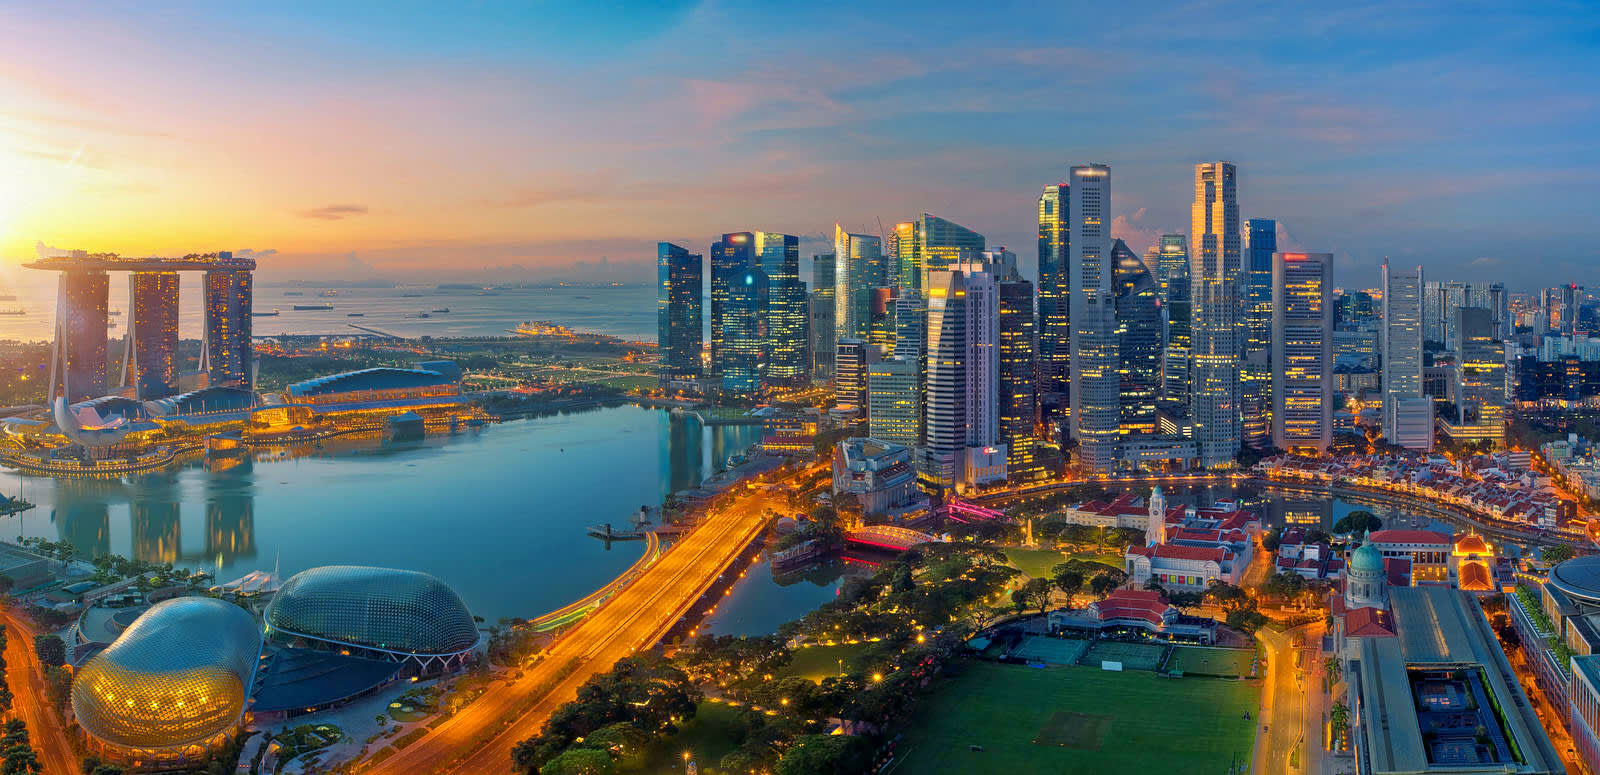 55 Best Places to Visit in Singapore - 2019 (Photos & Reviews)